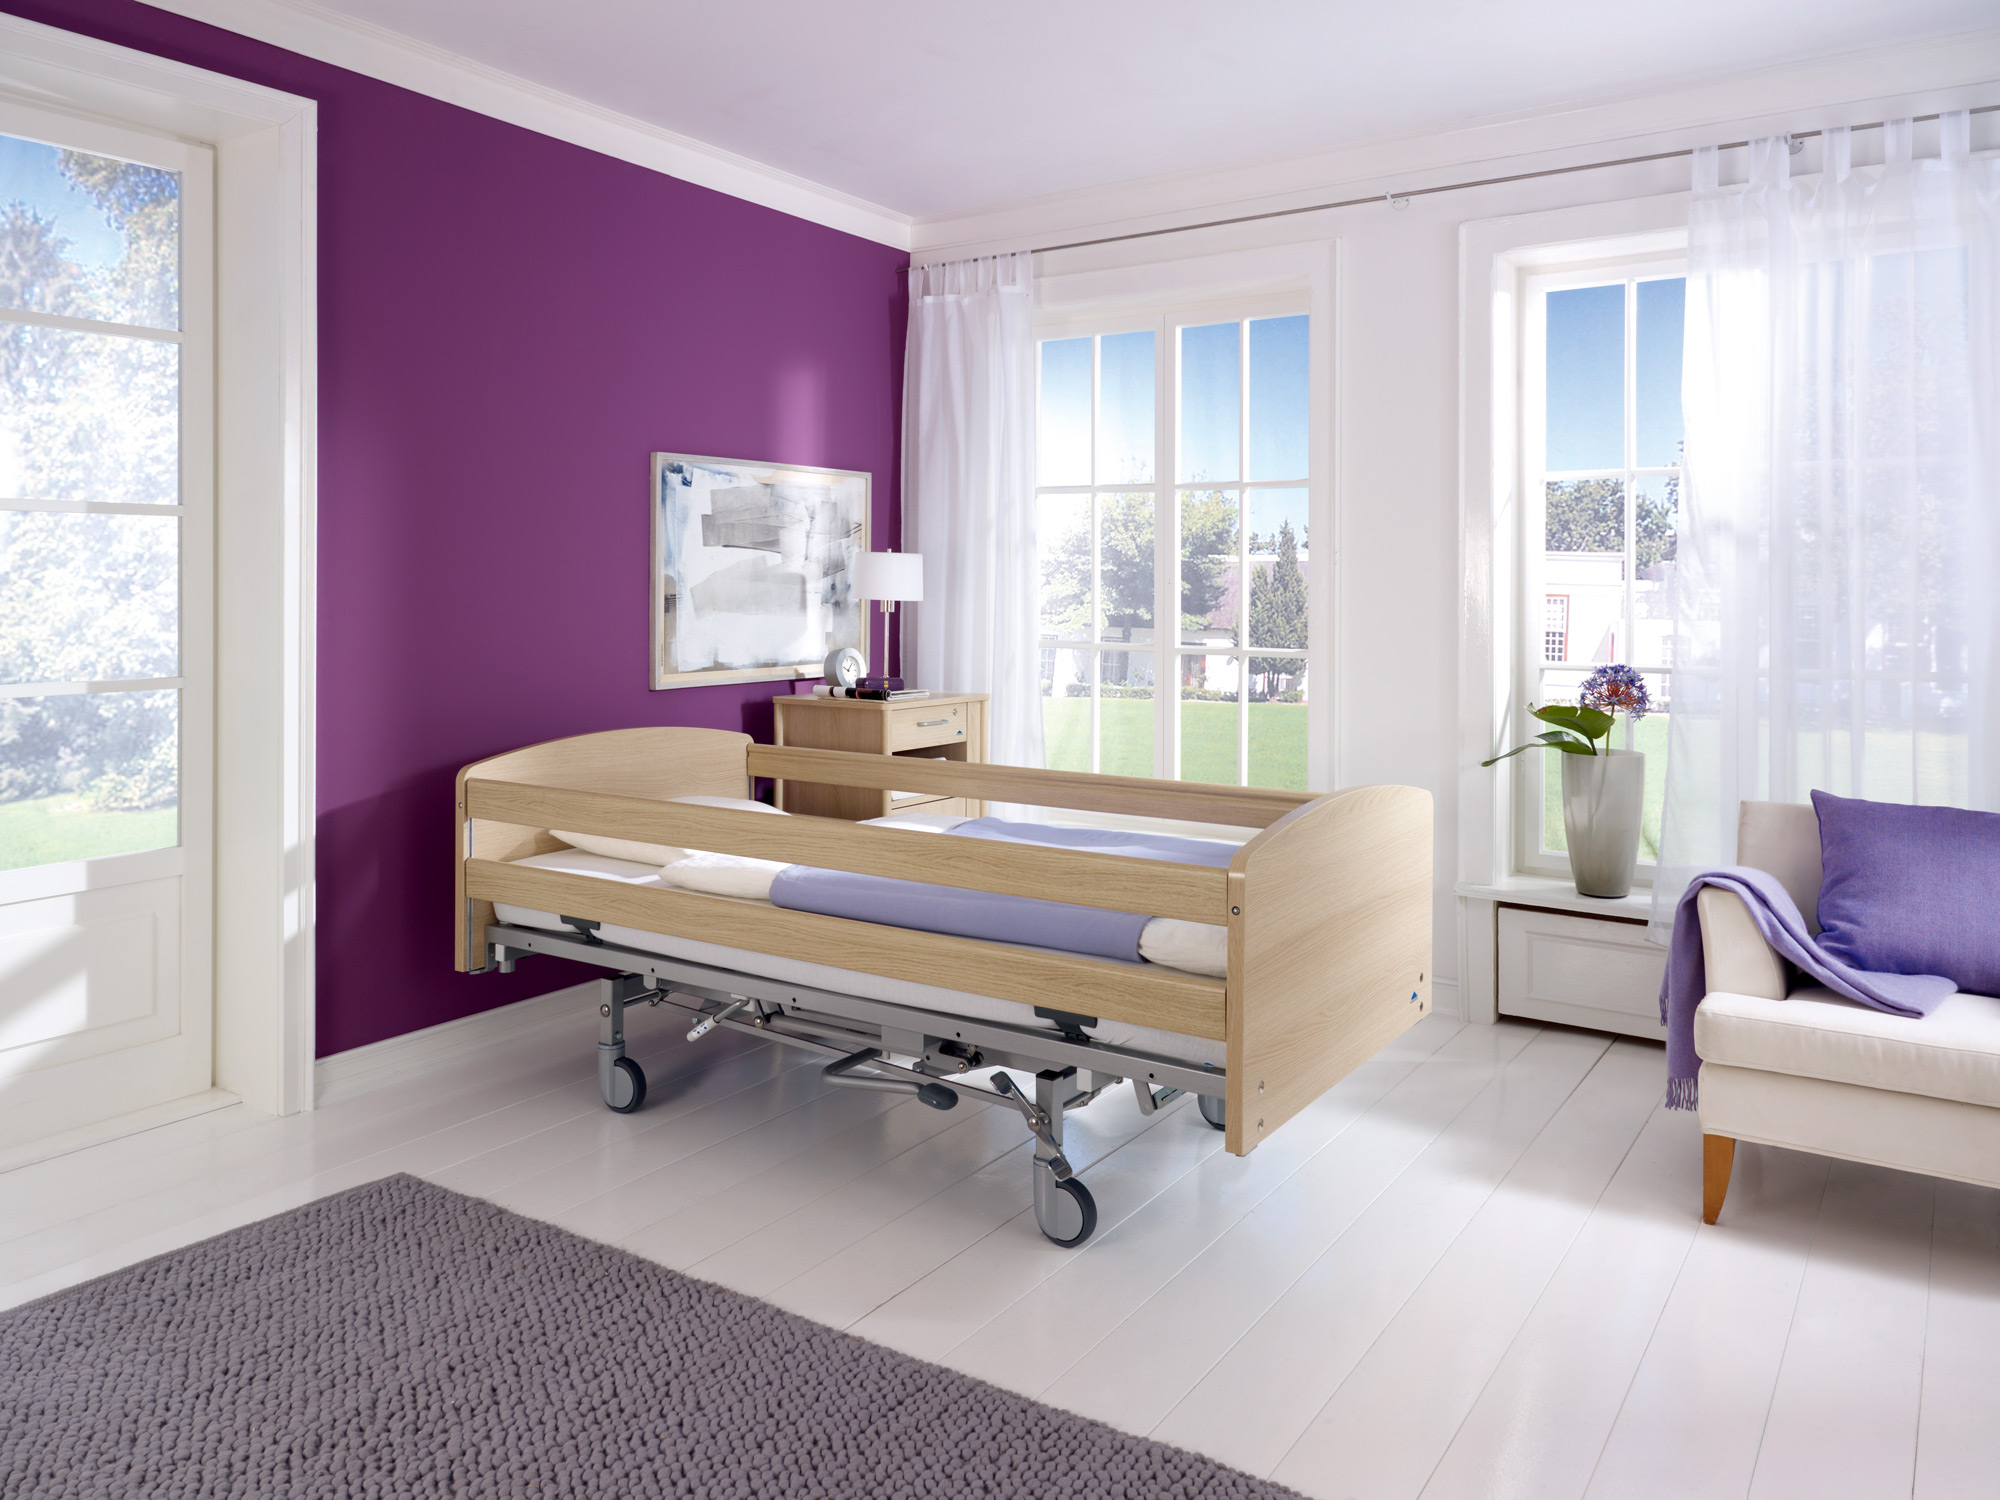 Full-length safety side on the Classiko care bed